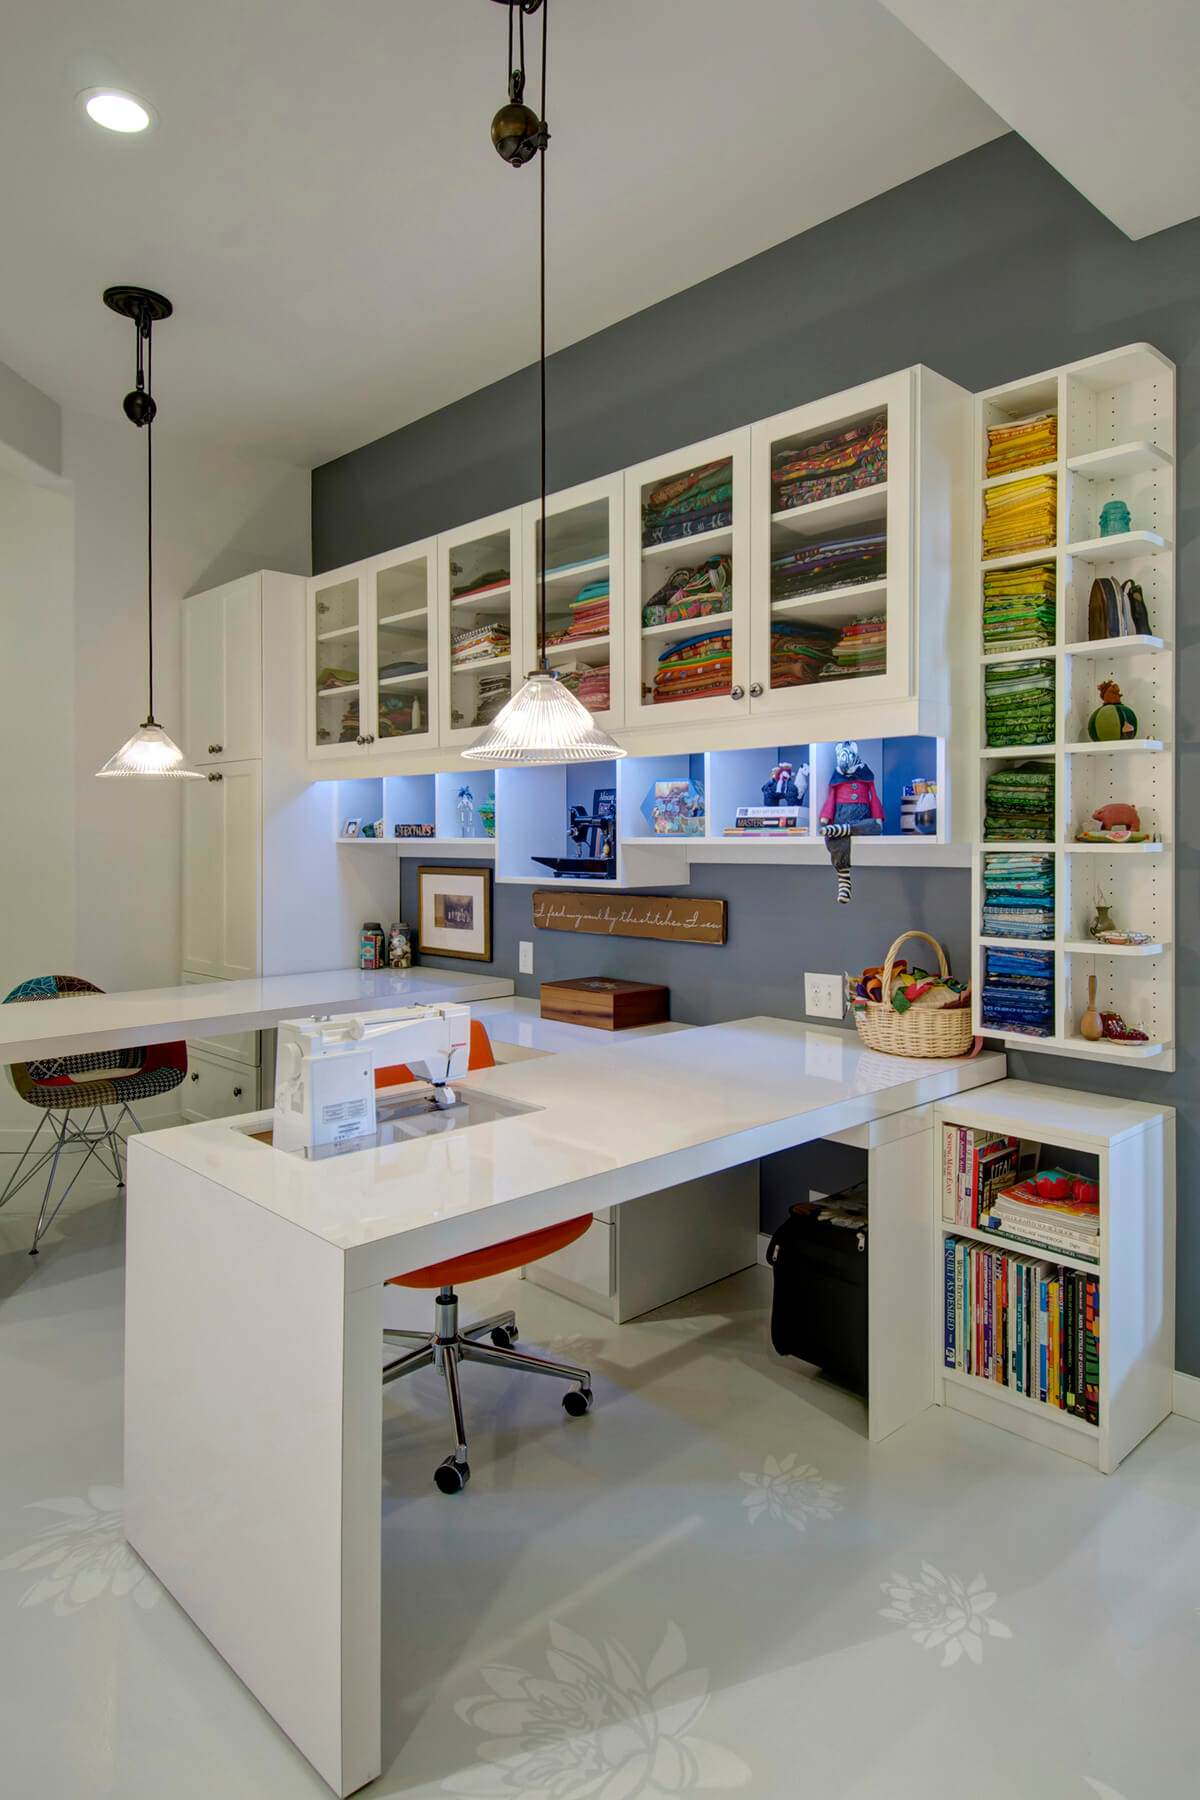 23 craft room design ideas creative rooms Create our own room design